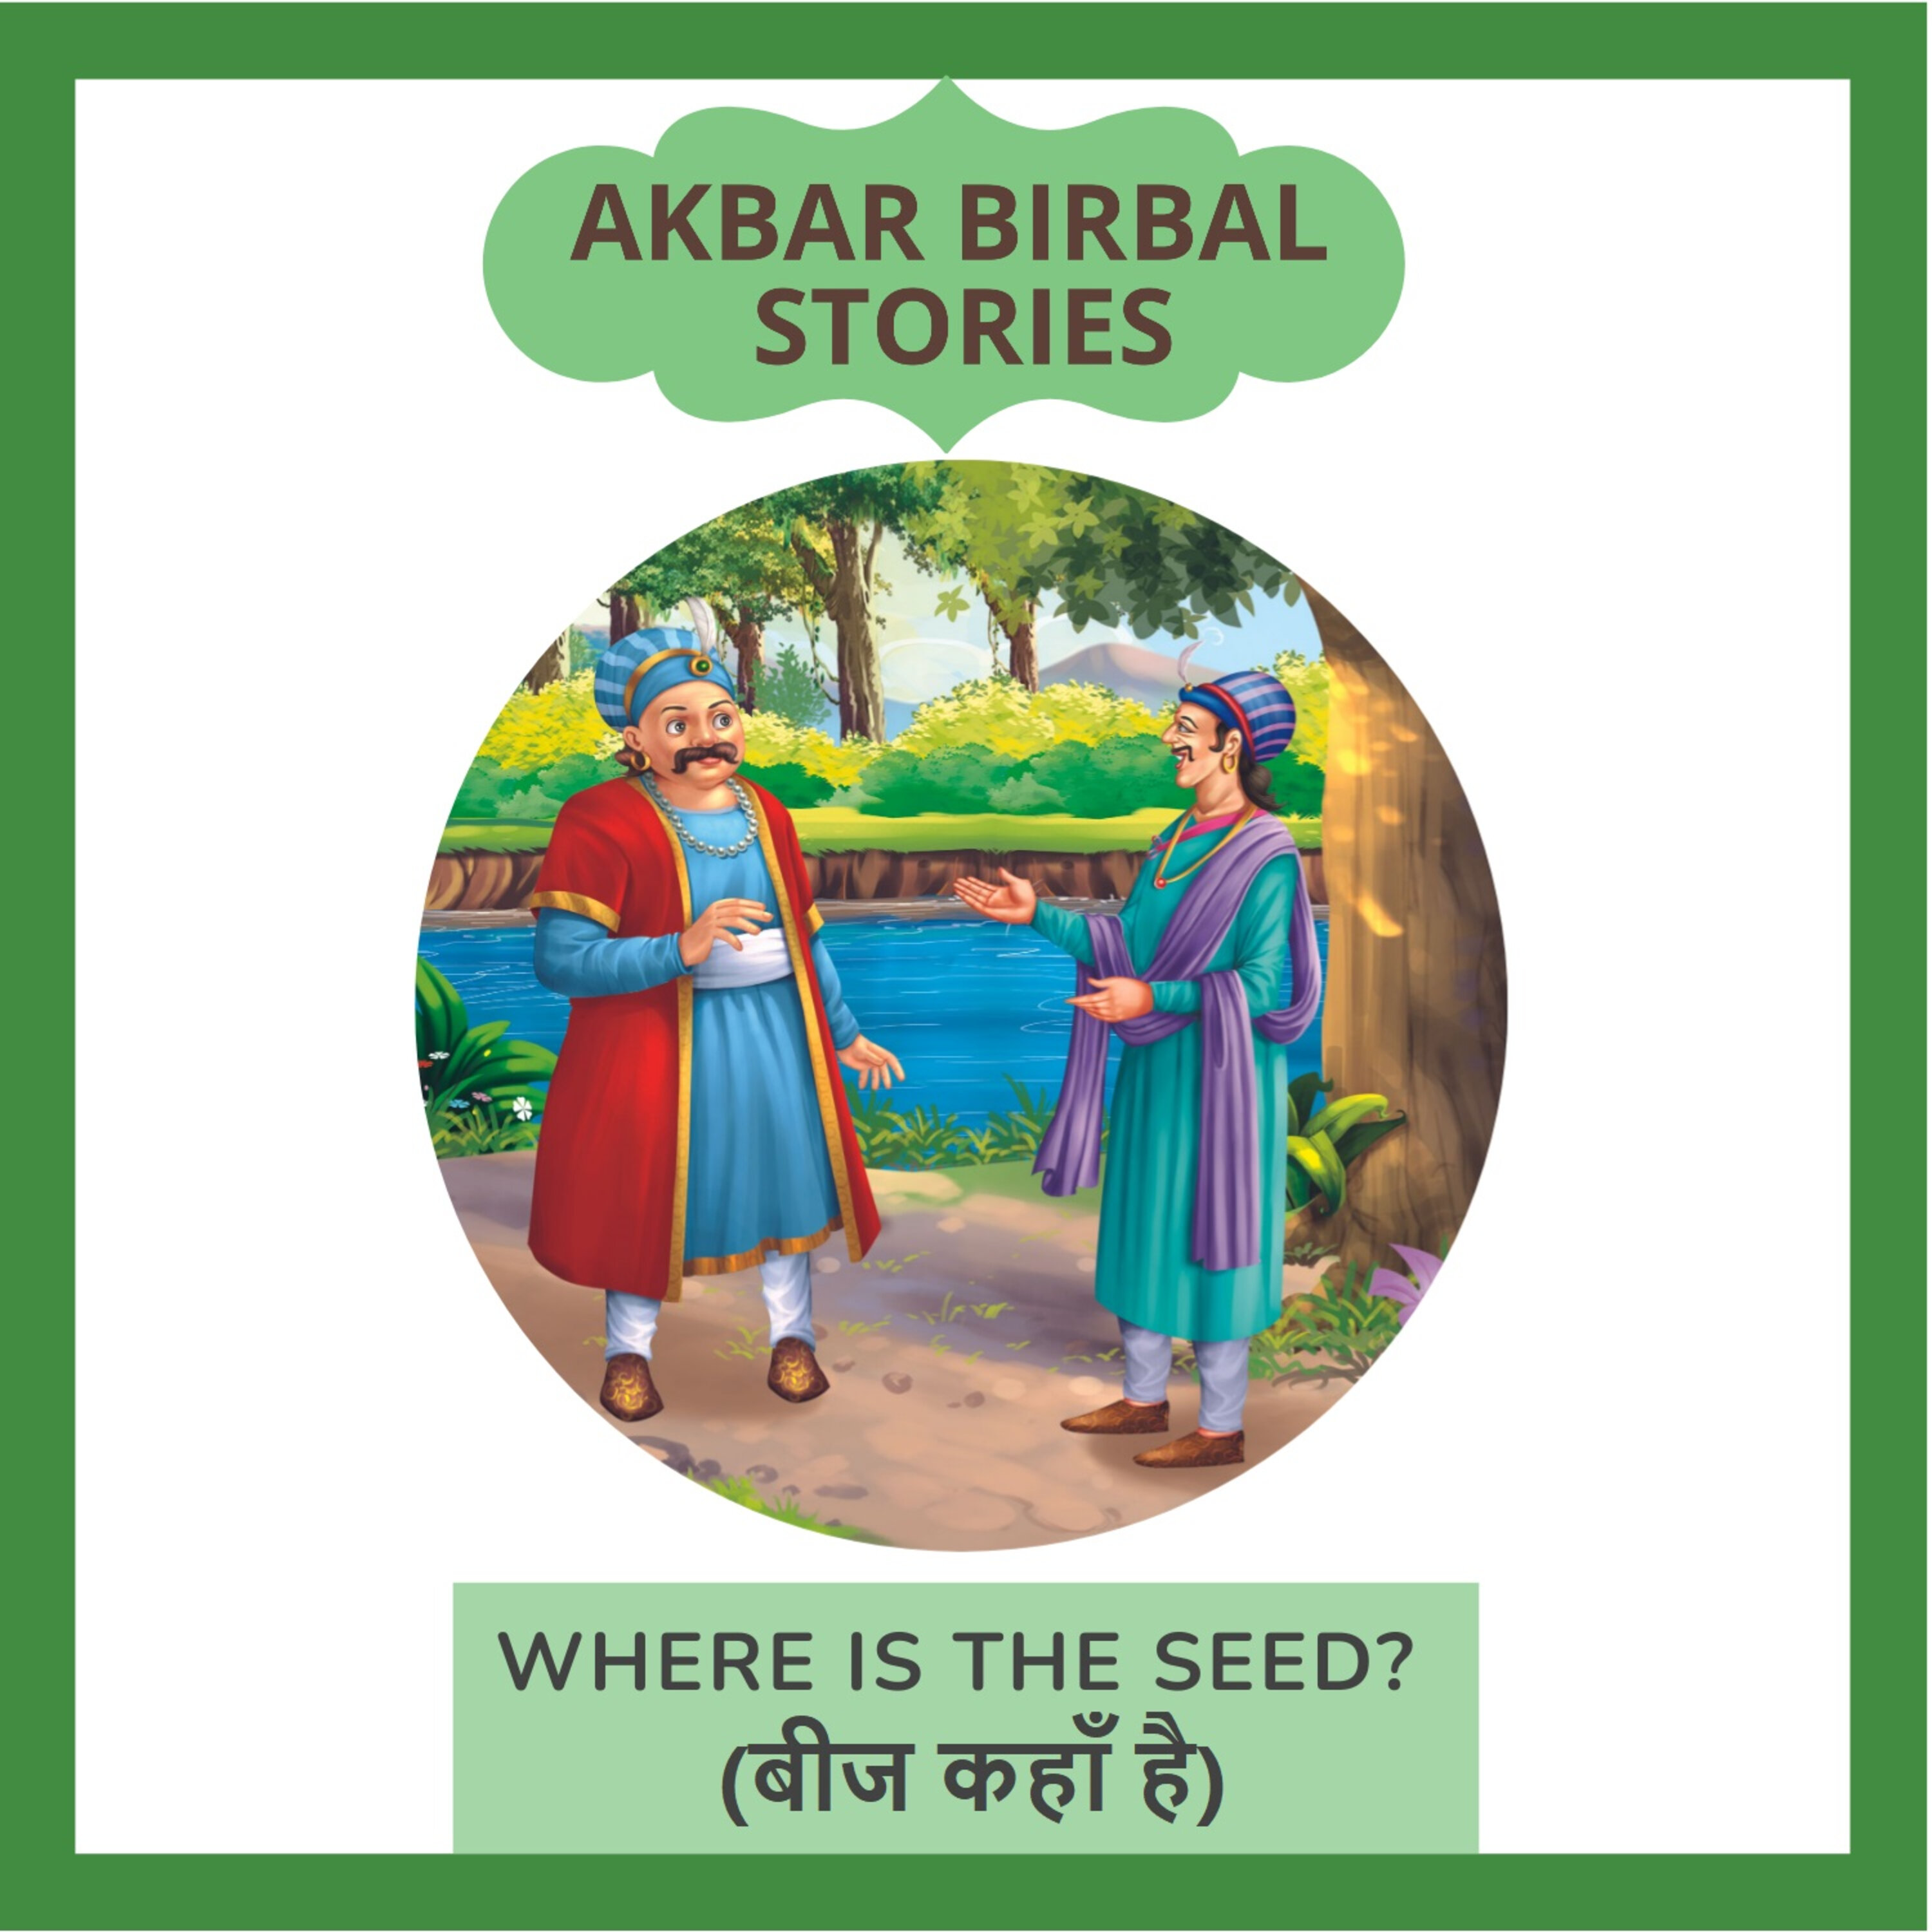 Where Is The Seed? (बीज कहाँ है?)